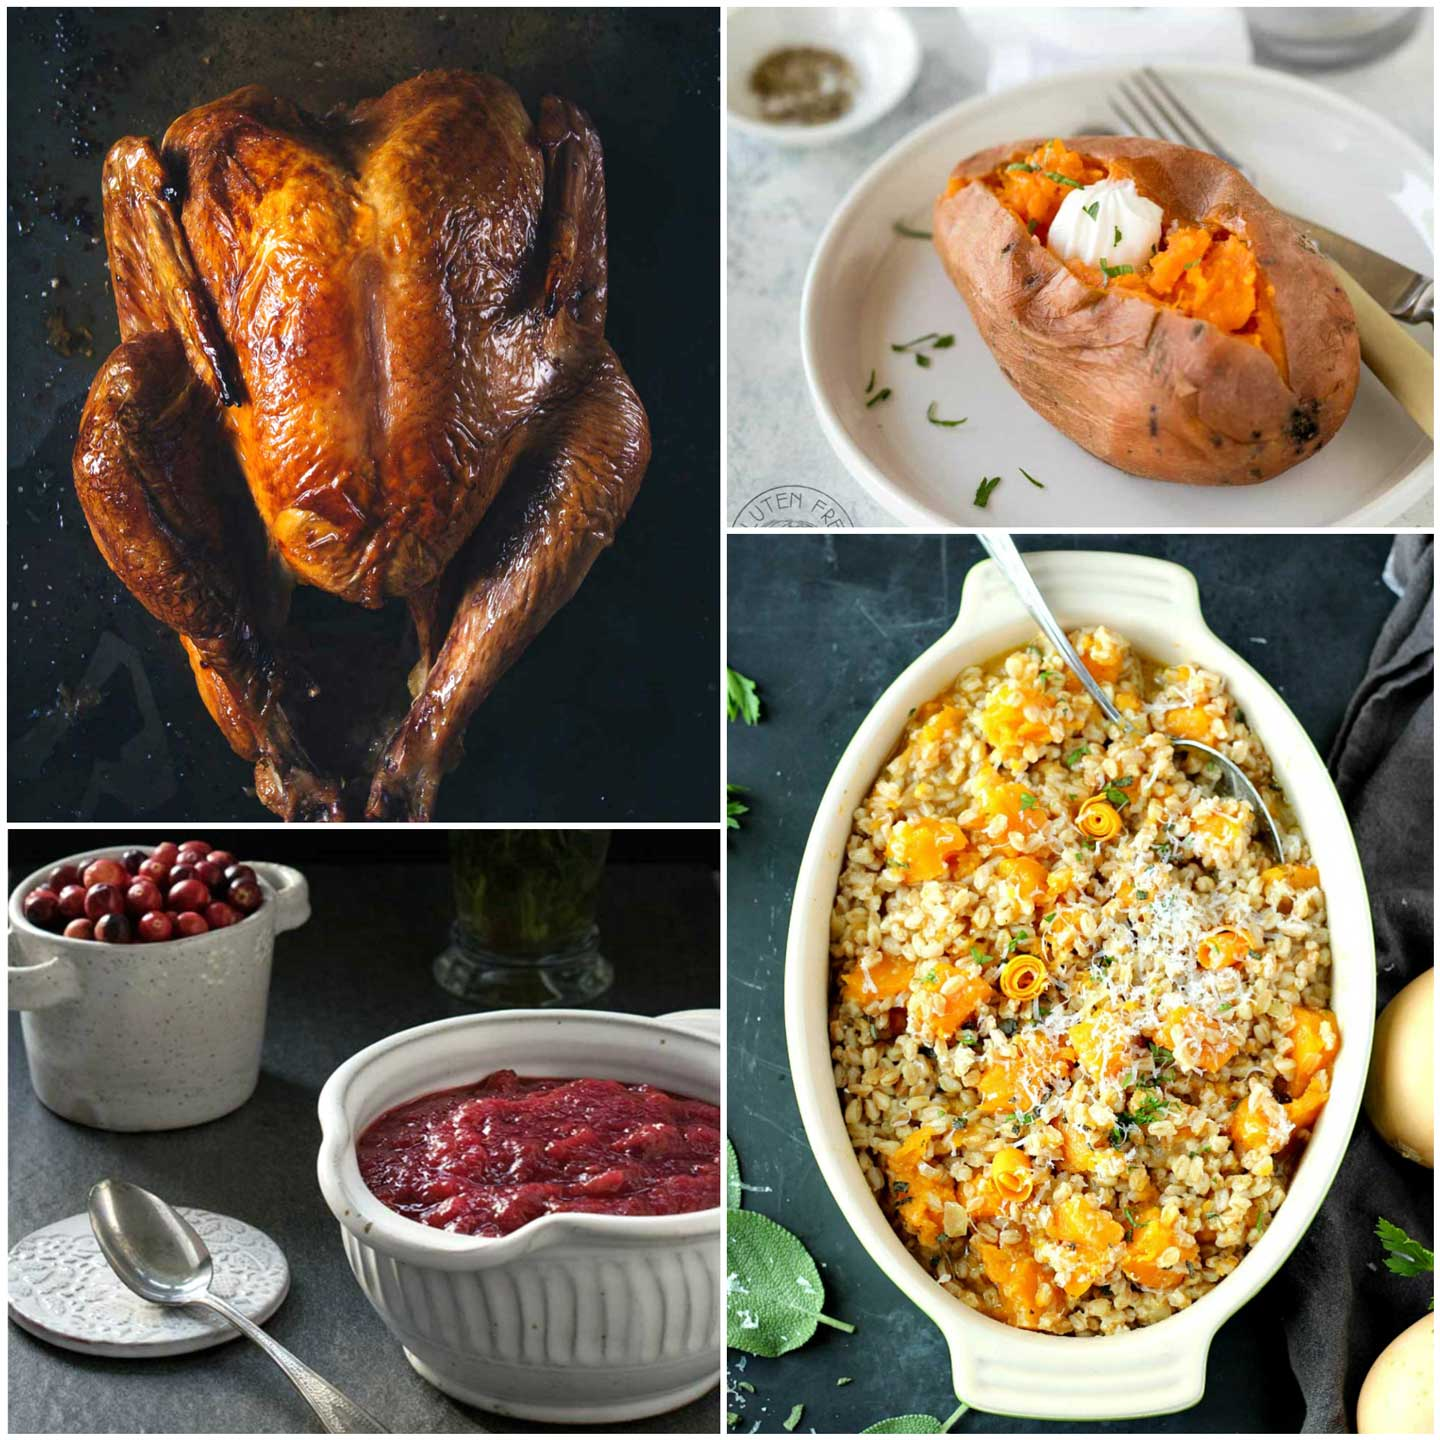 Healthy Instant Pot Thanksgiving Recipes are a great way to move some of your feast from the overcrowded oven and stovetop, making your life a little bit easier as you prep the big feast! Put that electric slow cooker to work, and you've got a great alternative to typical preparations!